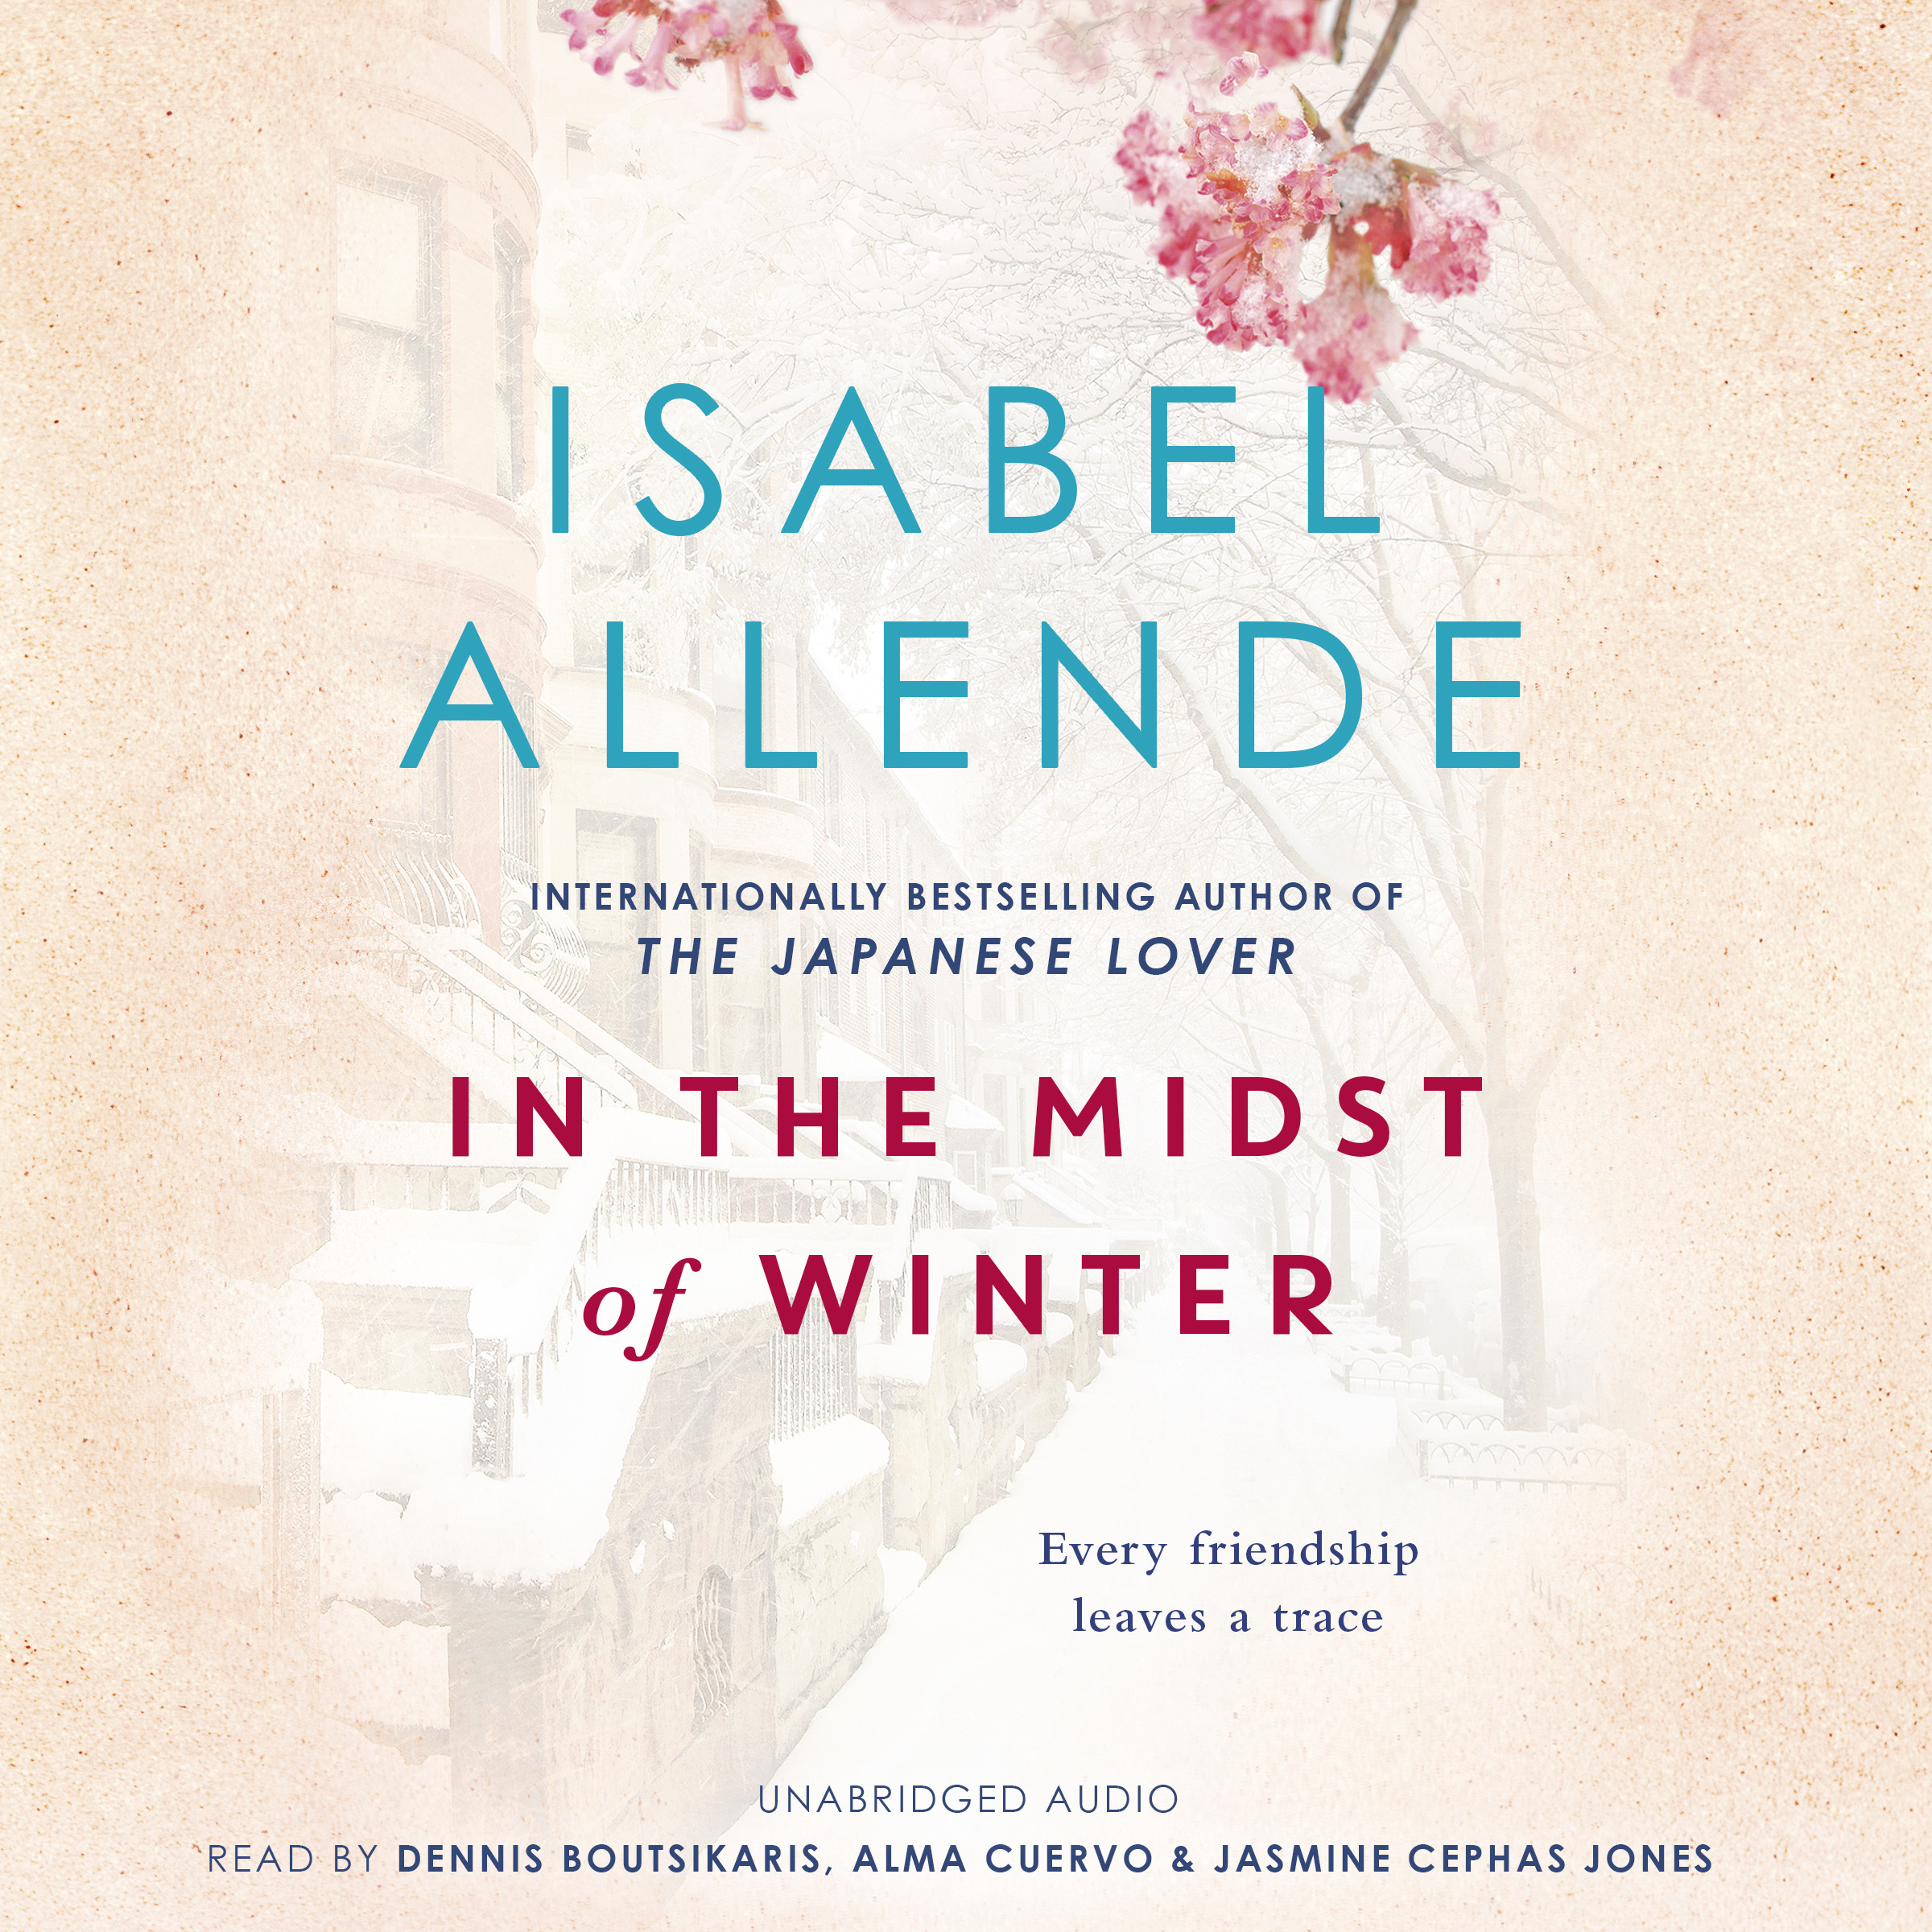 Libro Paula De Isabel Allende In The Midst Of Winter By Isabel Allende